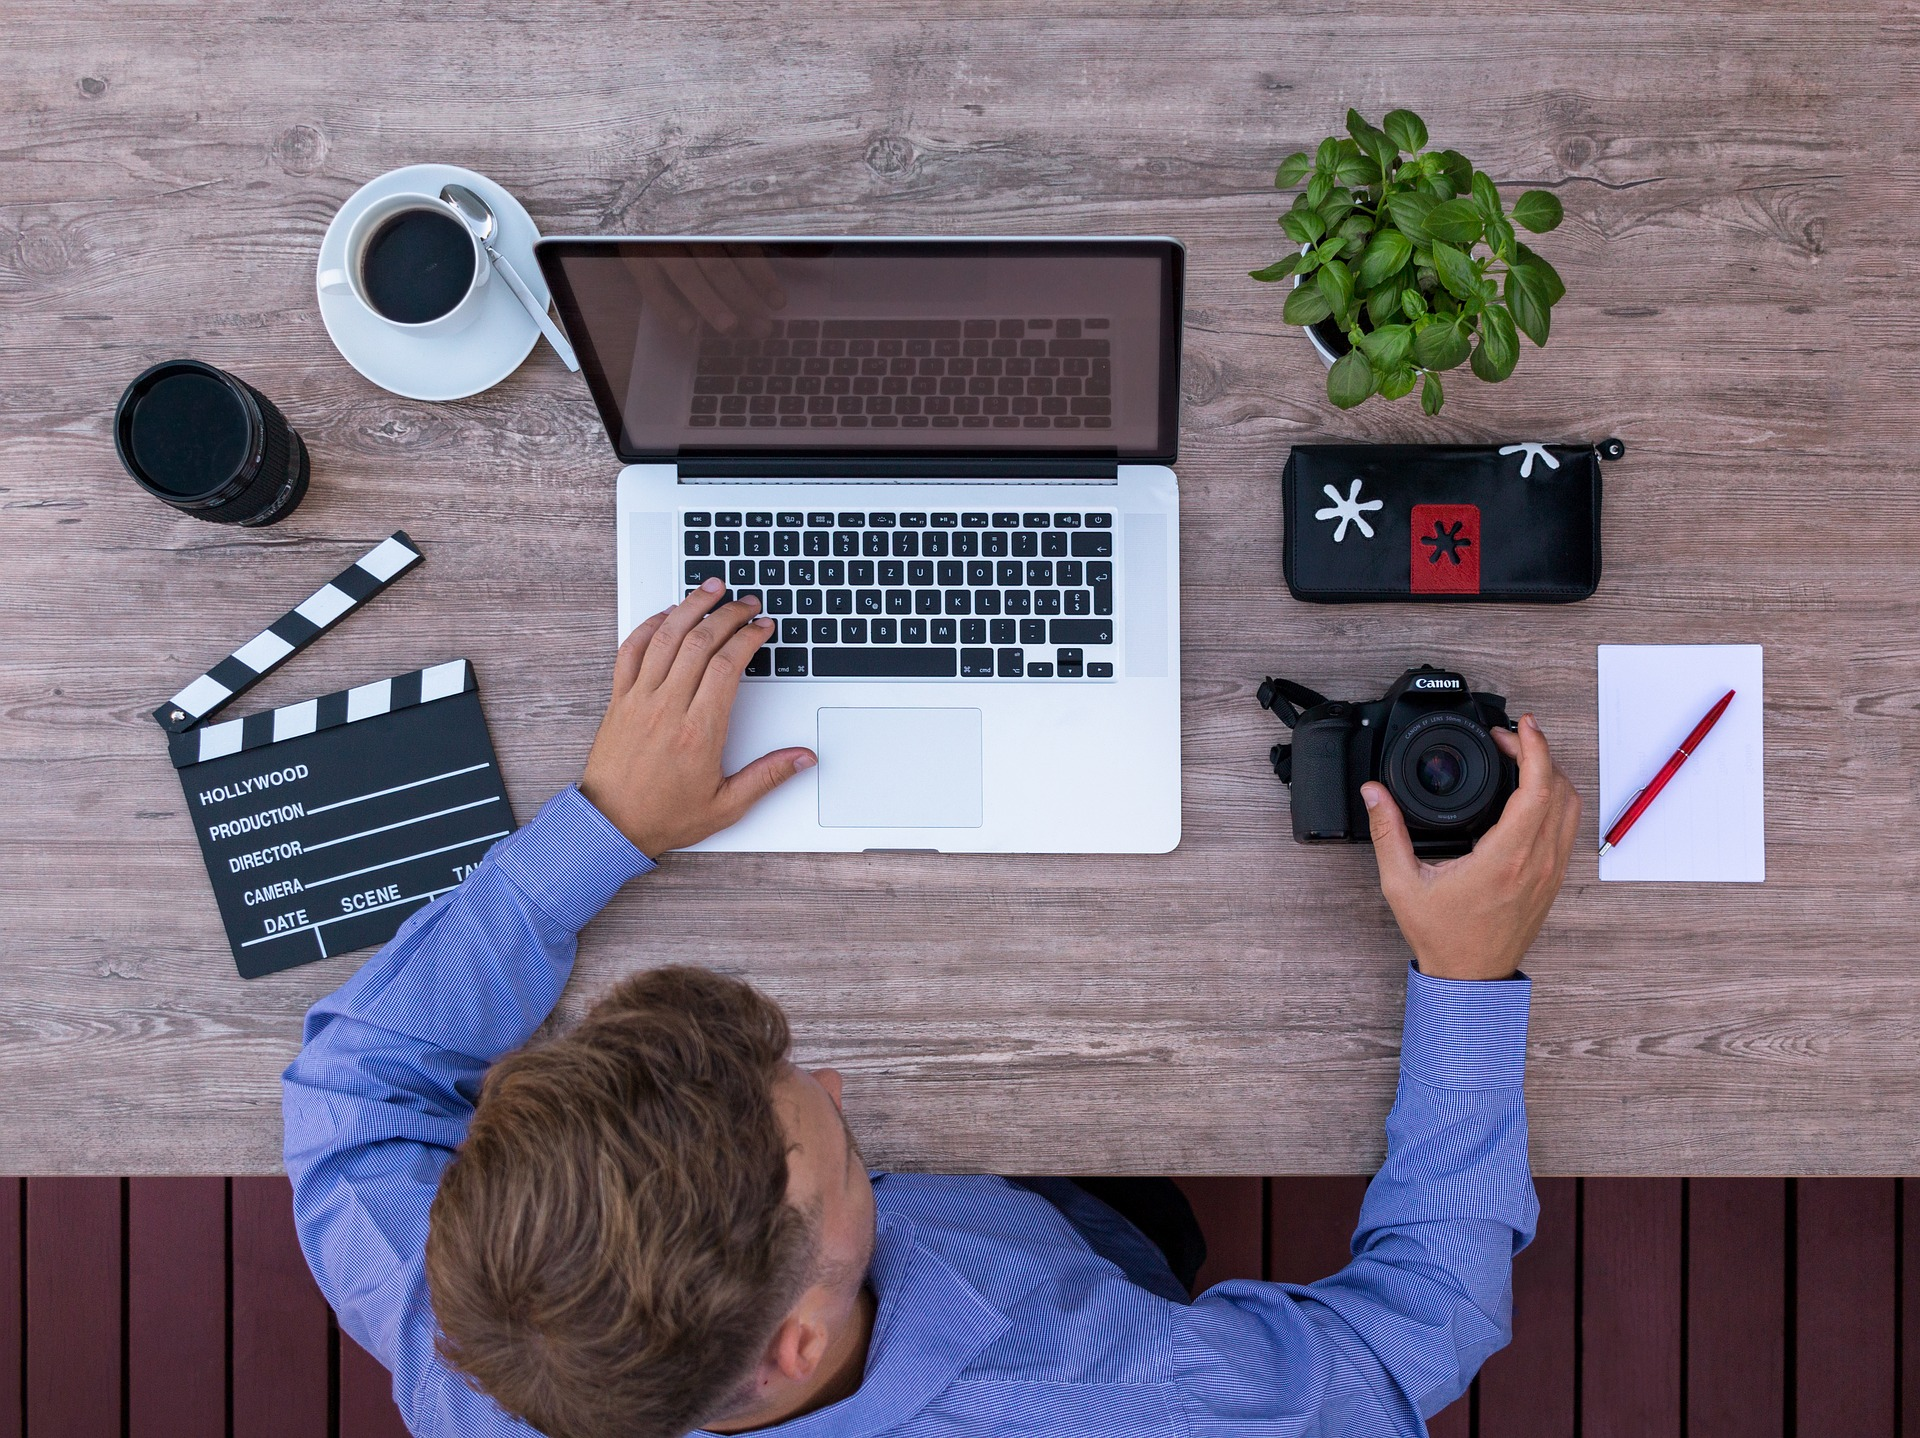 Video producer working at a laptop with a clapboard and DSLR camera nearby